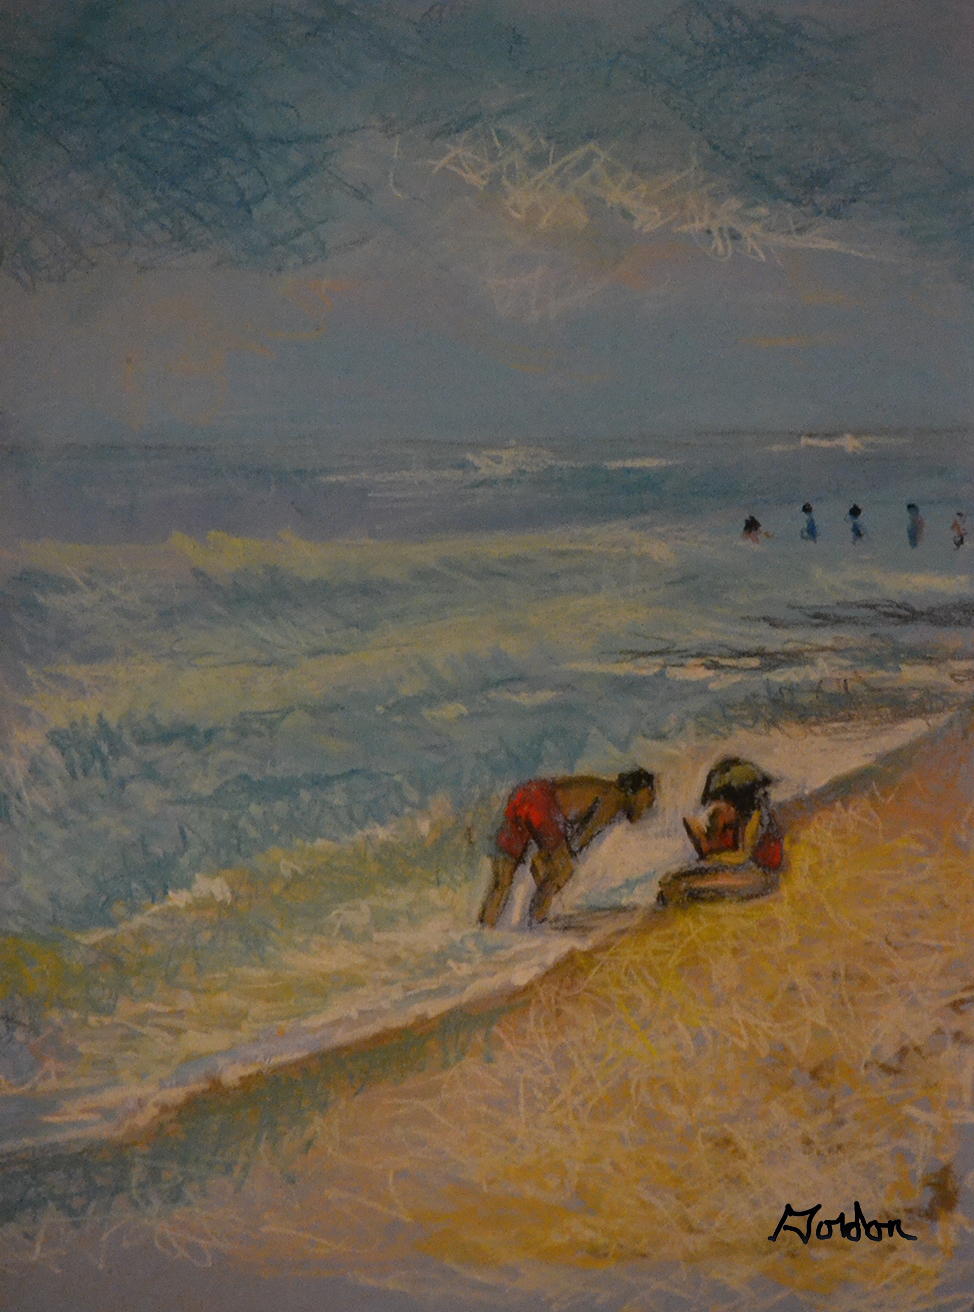 Looking for sea shells on the beach child and parents in pastels